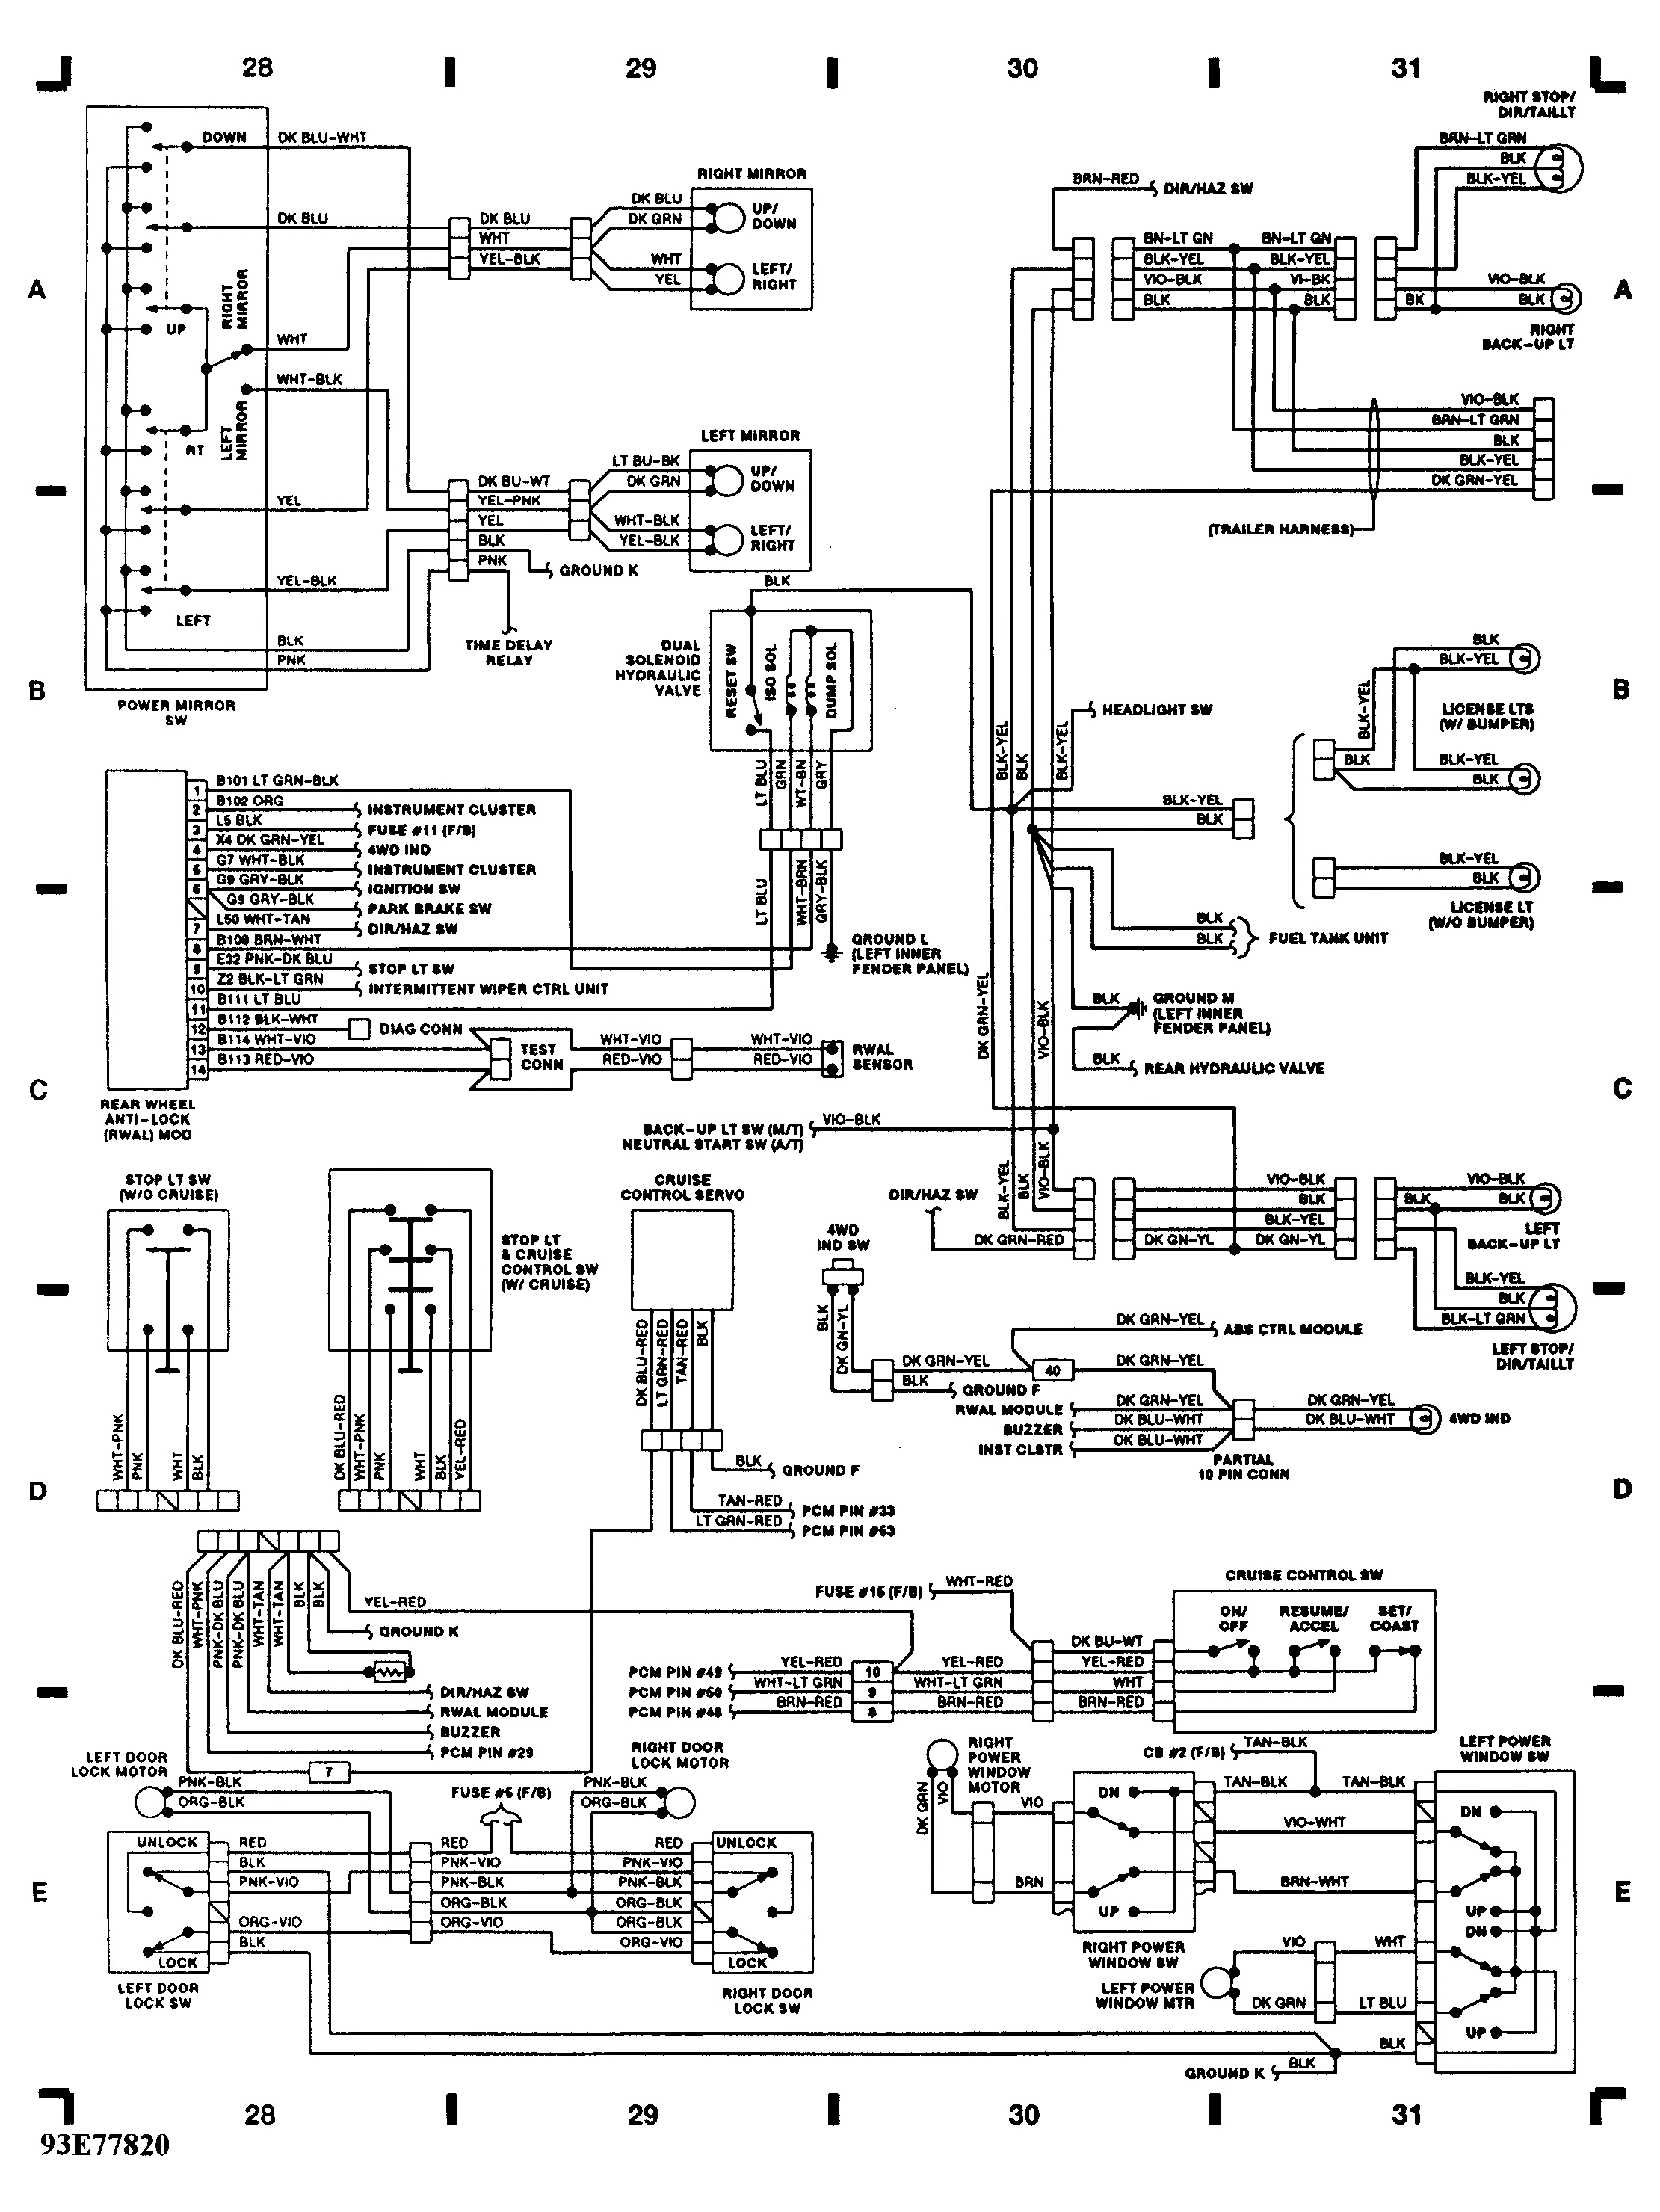 dodge dakota wiring diagram 1994 pu with wiring library Dodge Dakota Interior dodge dakota wiring diagram 1994 pu with